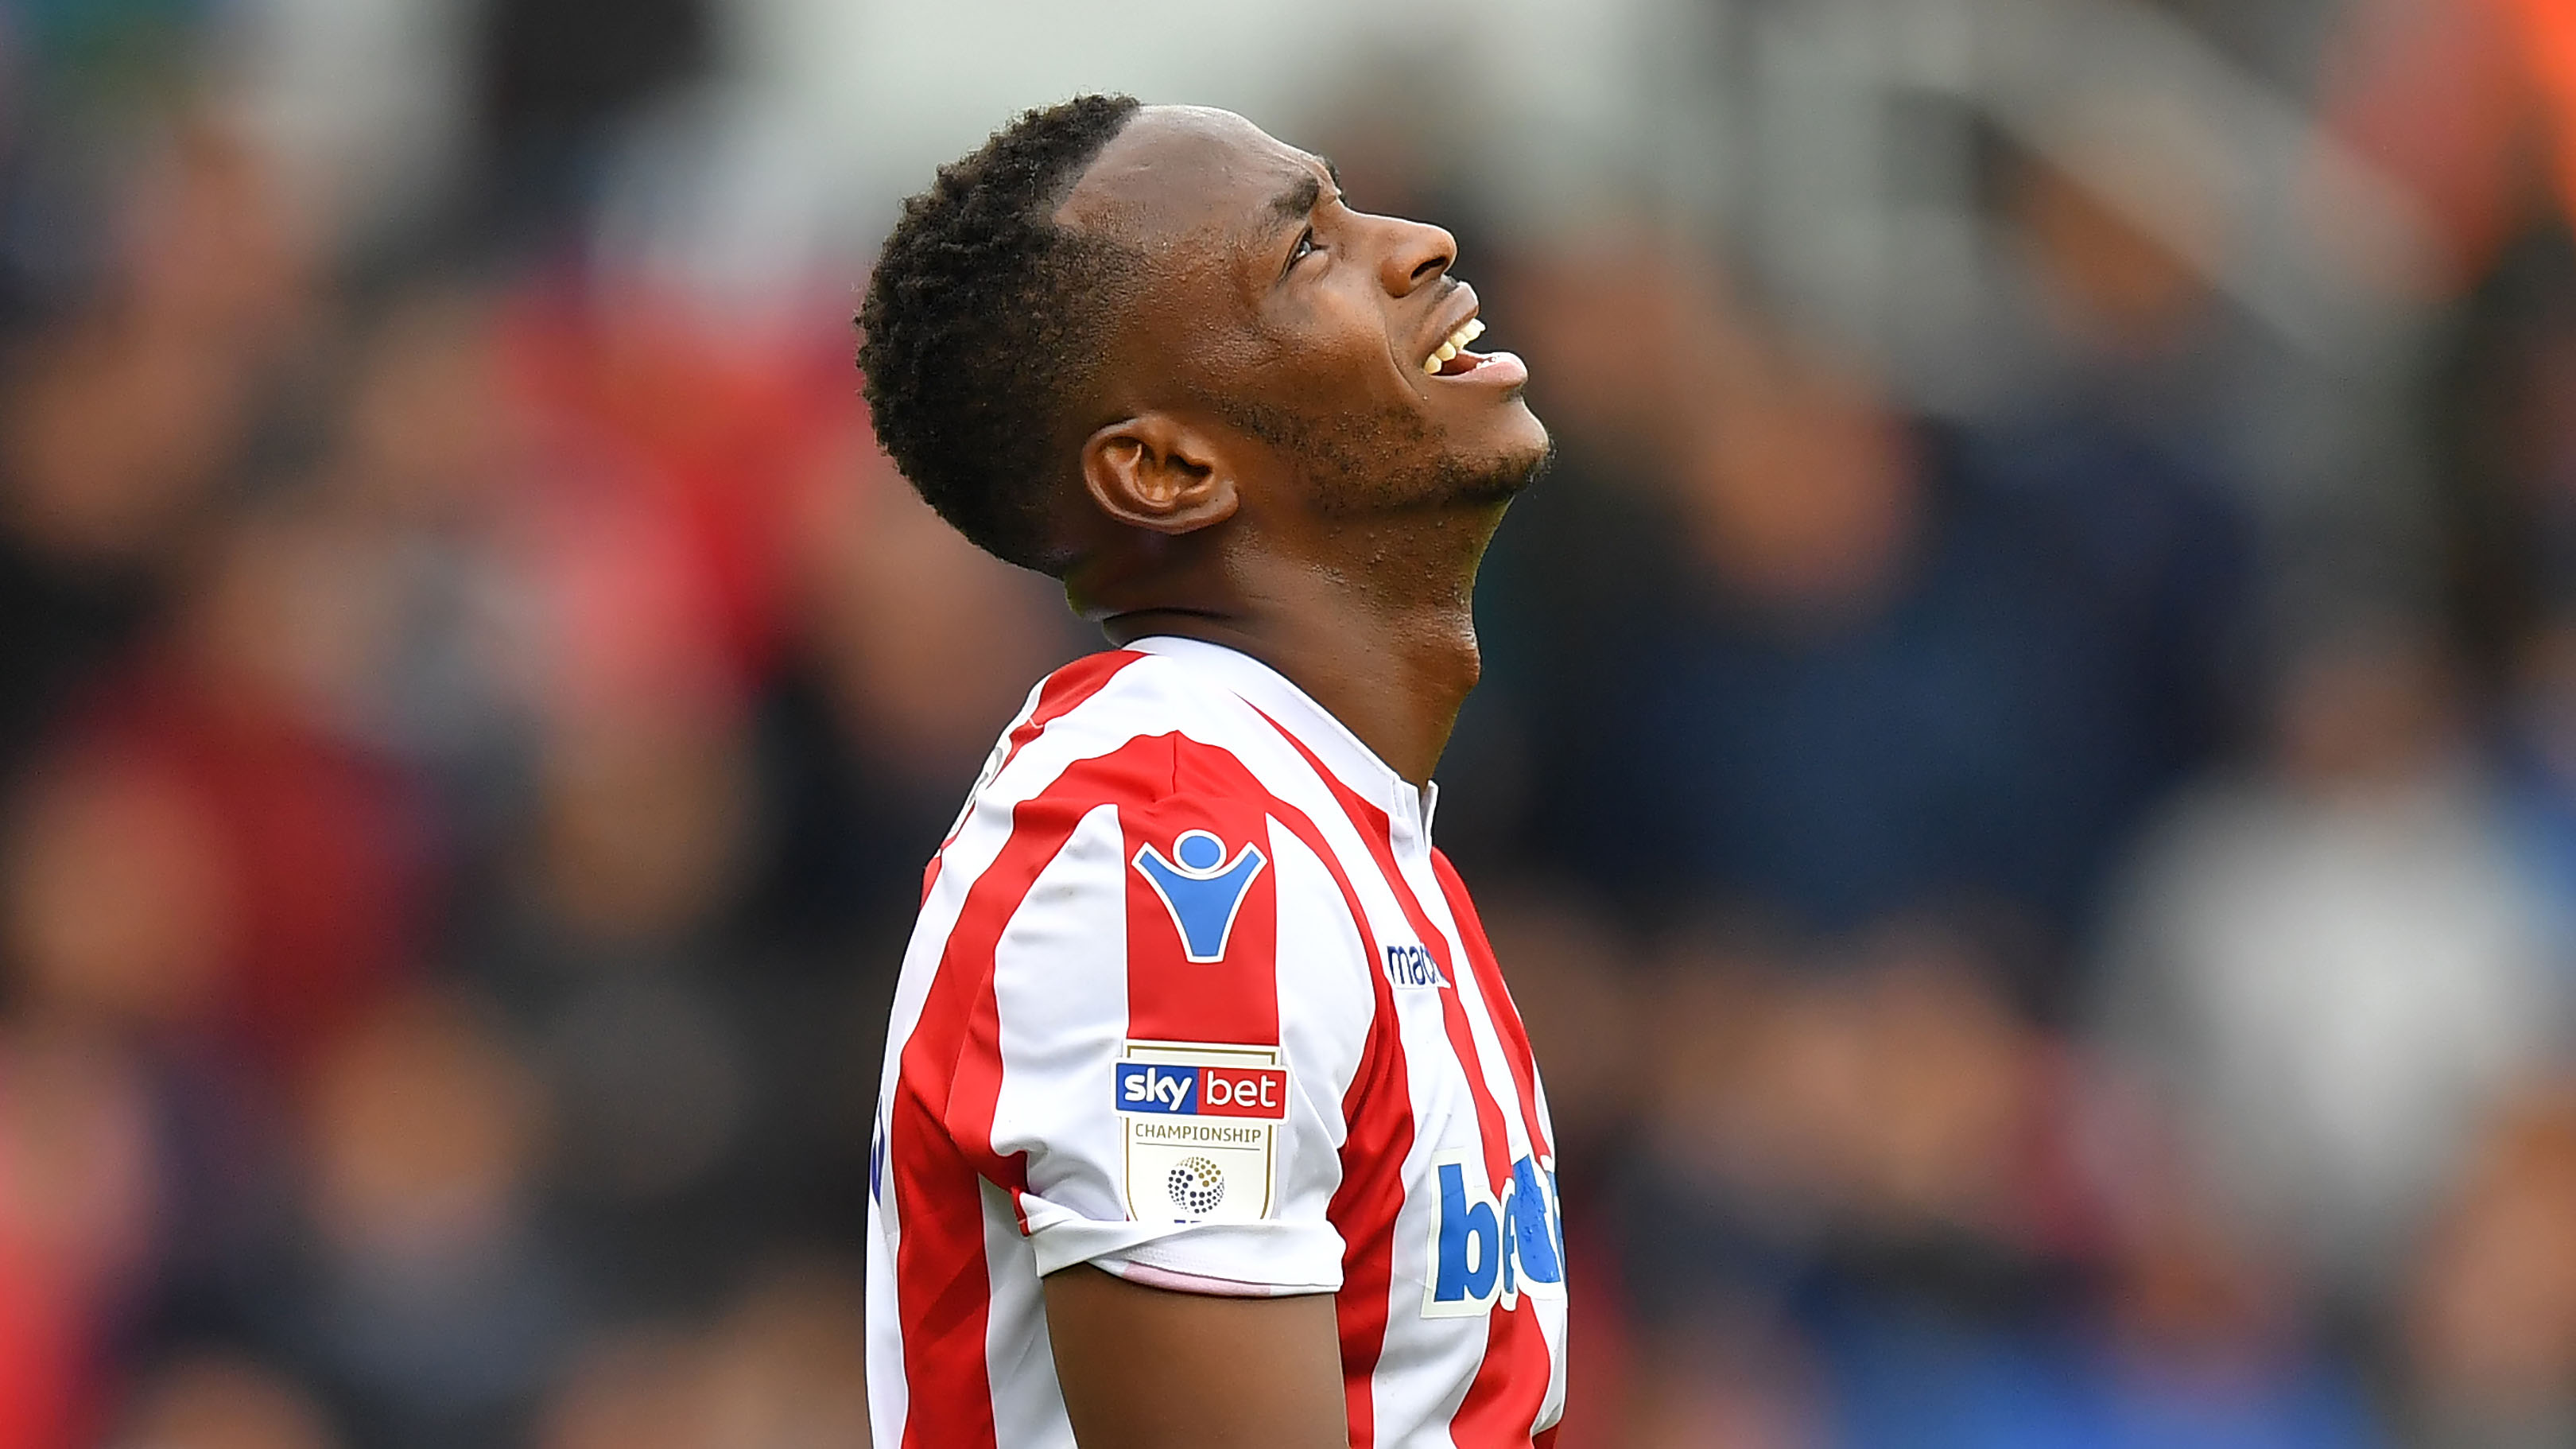 Saido Berahino: Stoke City striker gets parking ticket while in court